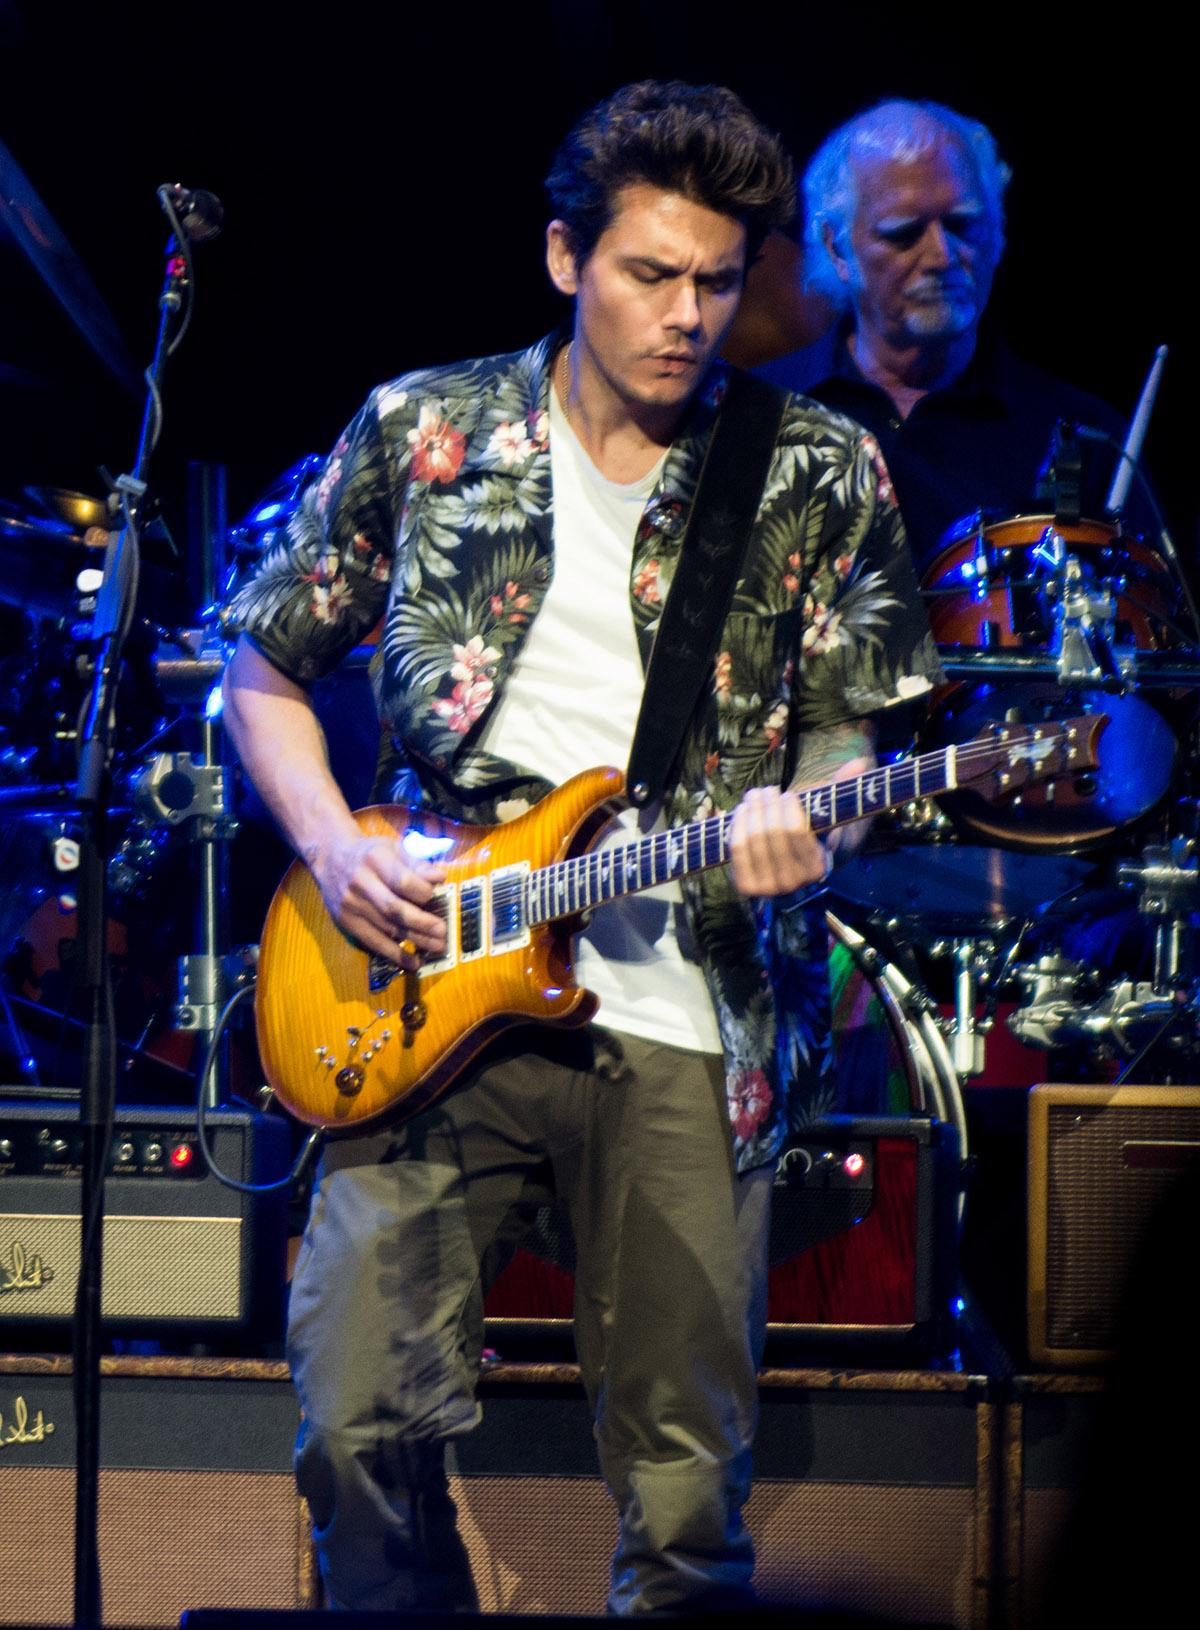 Grateful Dead members Bob Weir, Bill Kreutzmann, and Mickey Hart join John Mayer, Oteil Burbridge, and Jeff Chimenti as Dead & Company - playing classic material from the iconic rock band at Portland's Moda Center on July 22, 2016. (Photo by Tristan Fortsch)